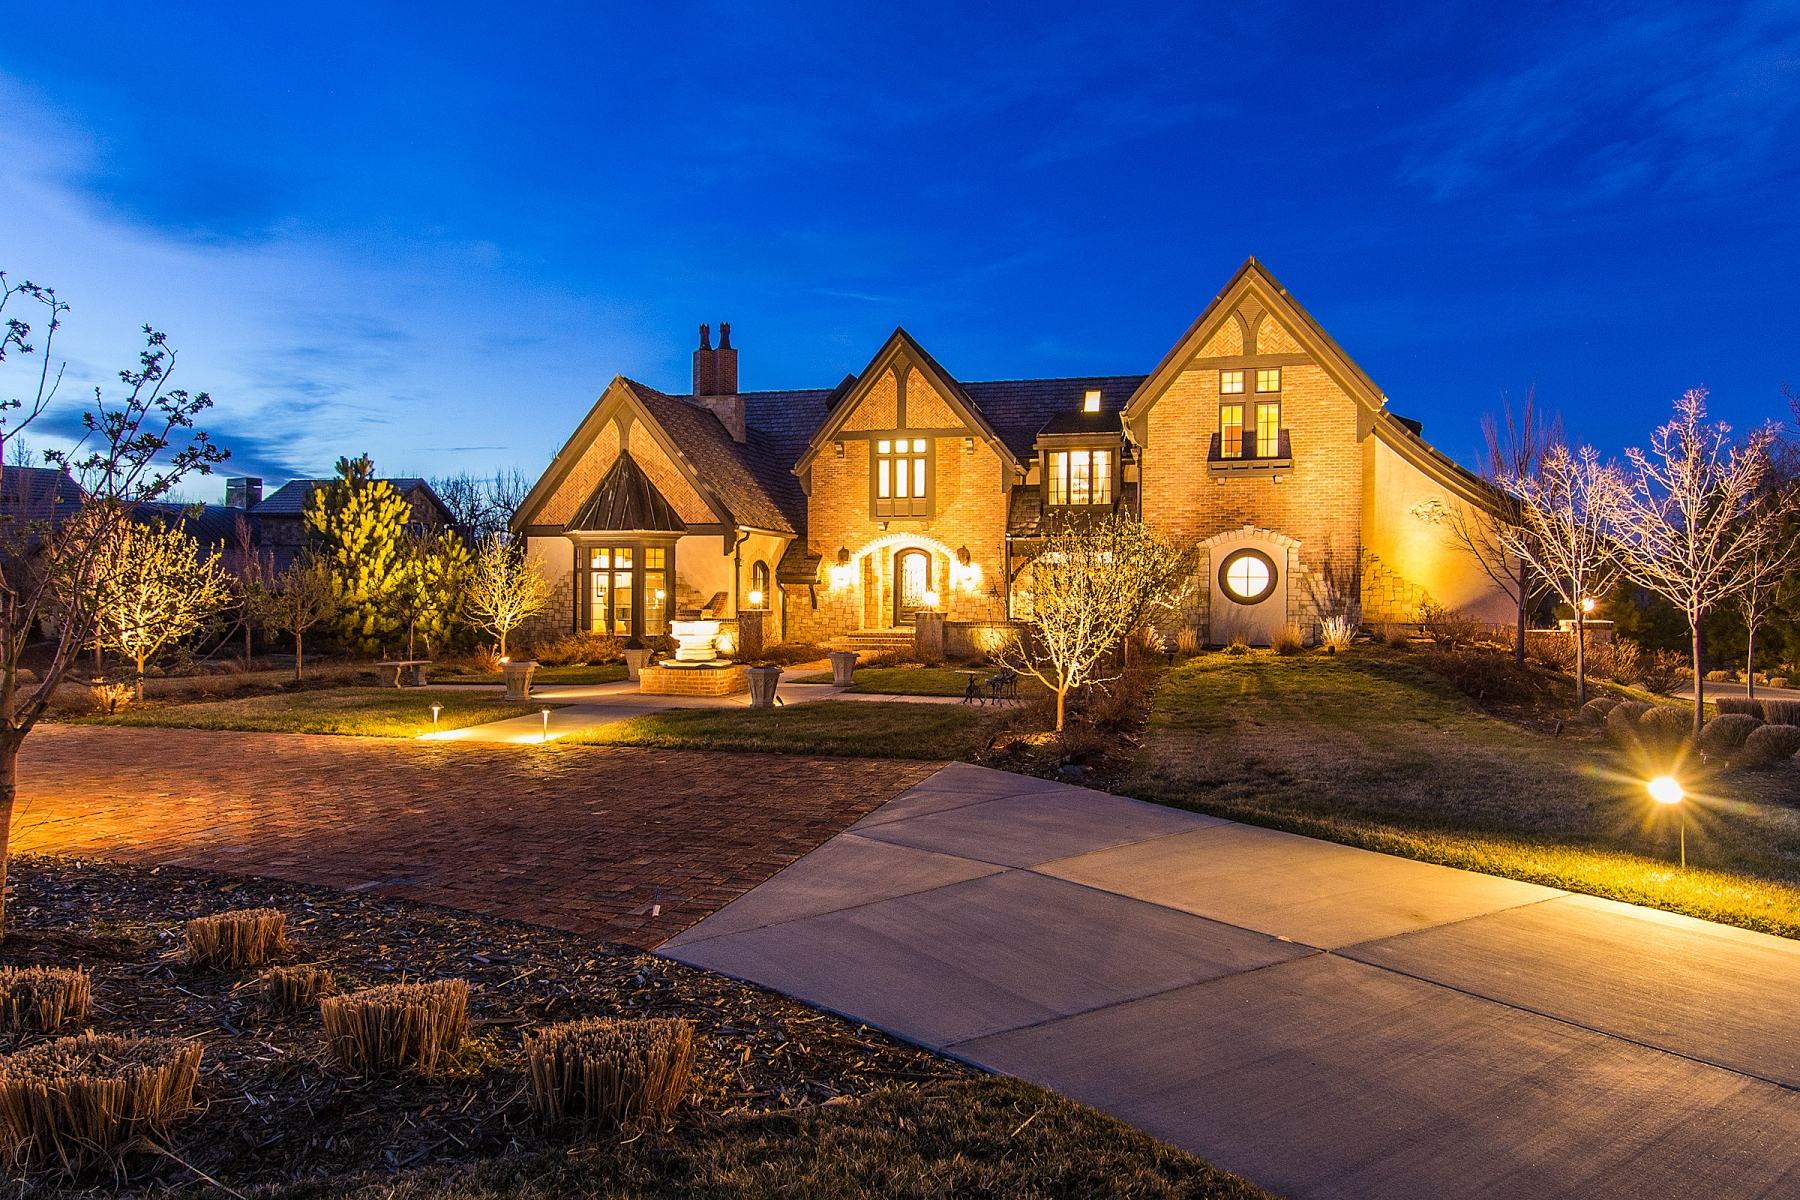 Single Family Home for Sale at Magnificent English Tudor with brilliant architecture backing to Highline Canal 4251 Preserve Parkway Greenwood Village, Colorado, 80121 United States